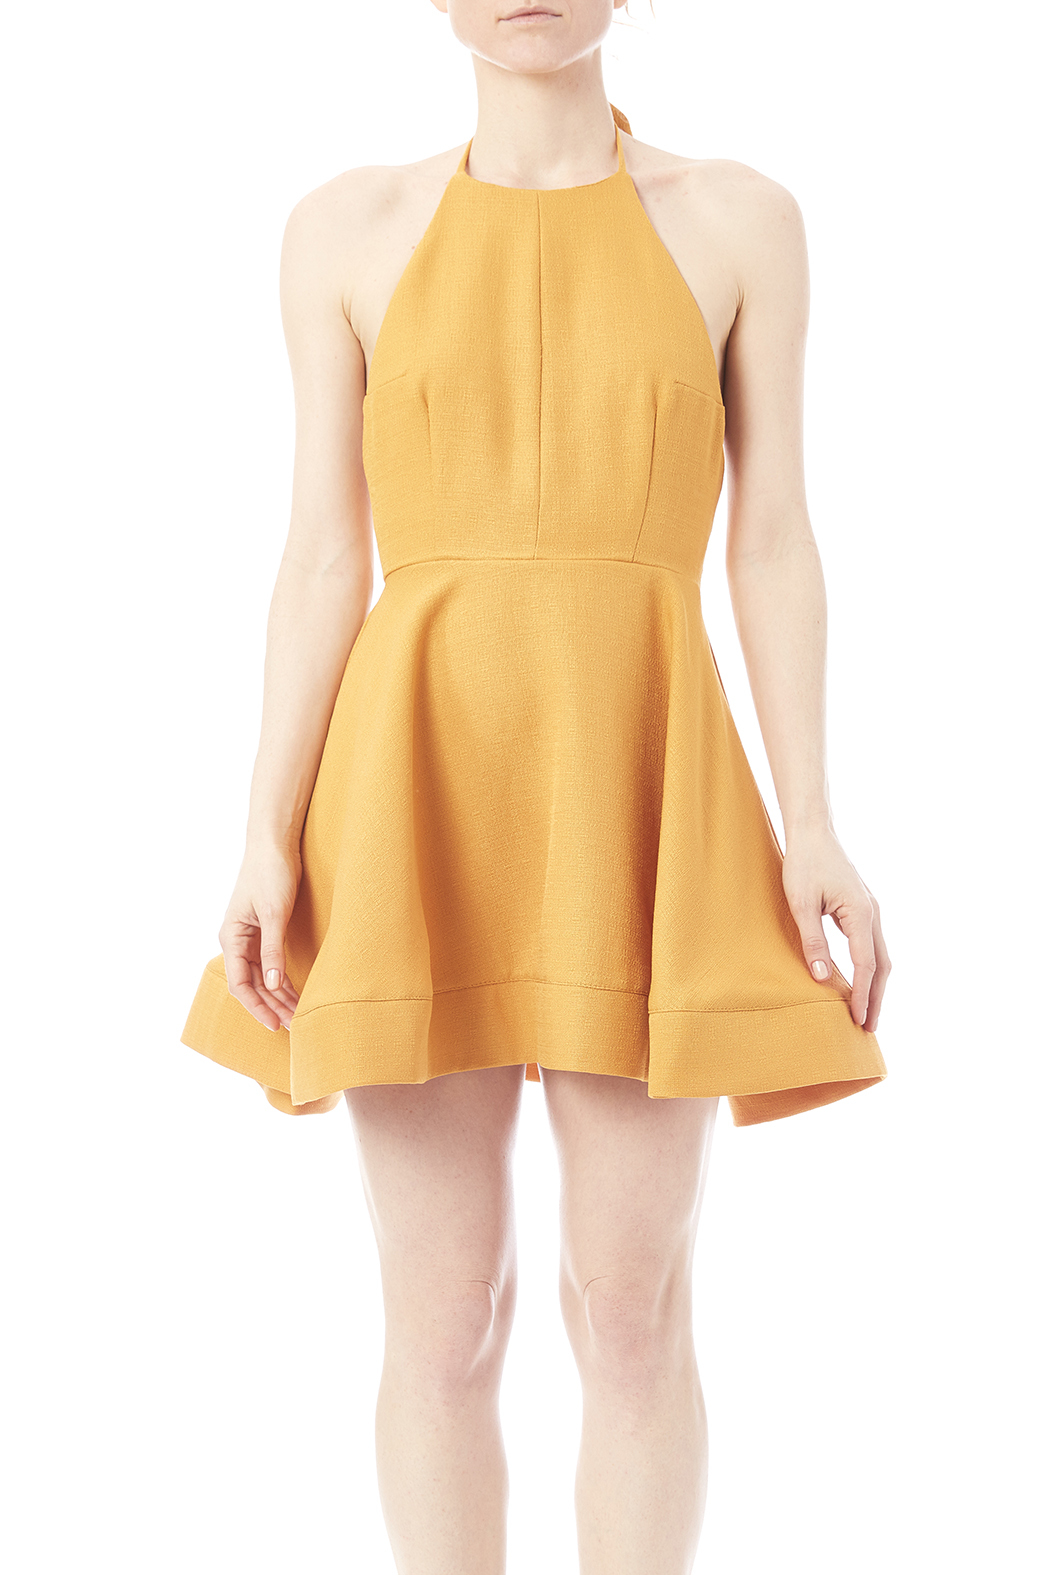 luxxel The Mandy Dress - Side Cropped Image